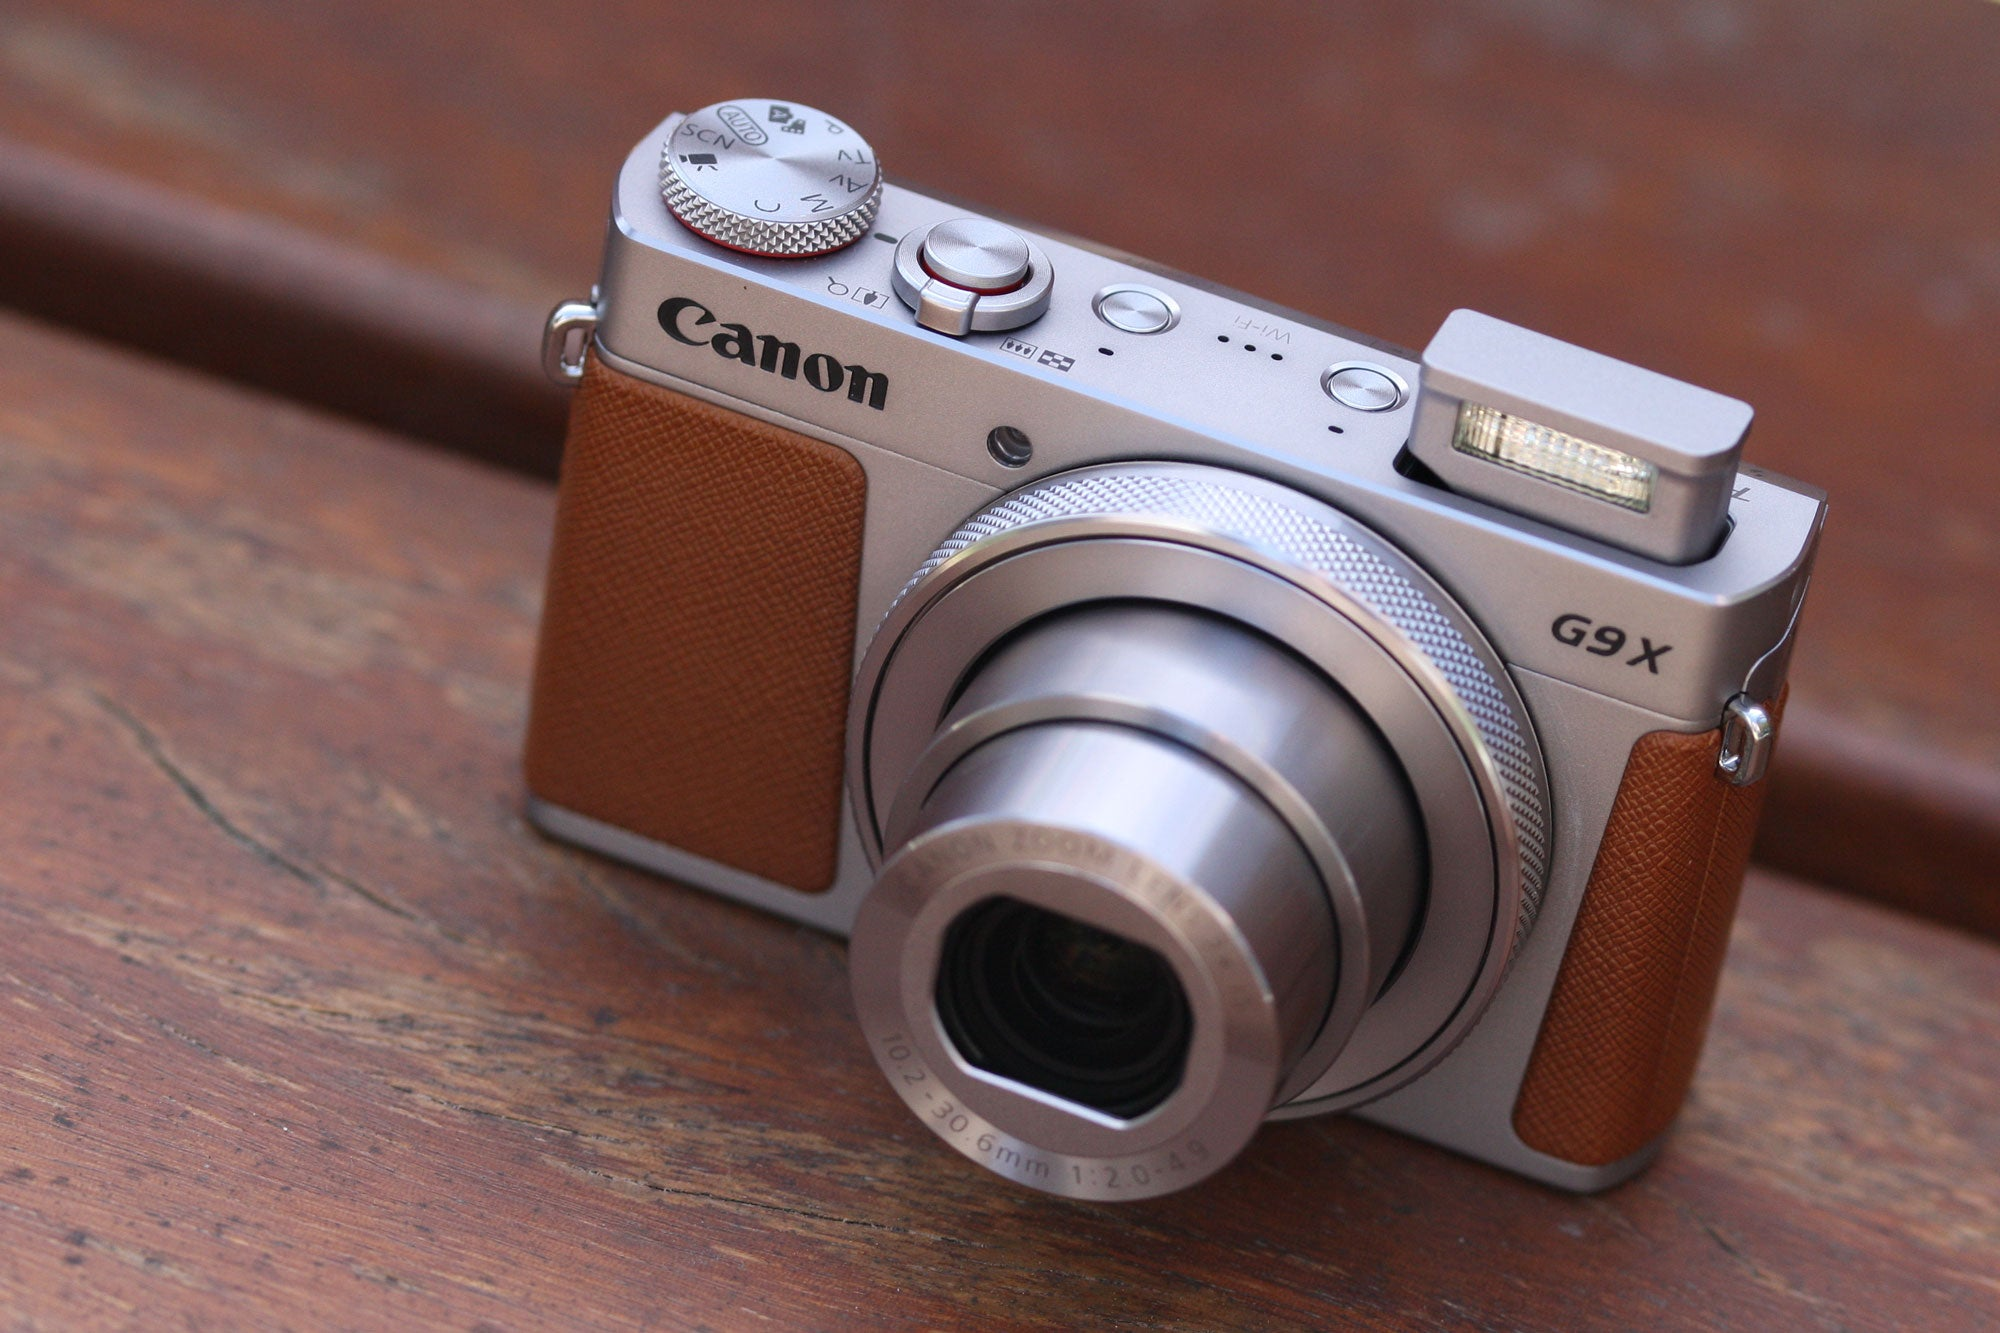 Canon PowerShot G9 X Mark II - slim, stylish and highly capable